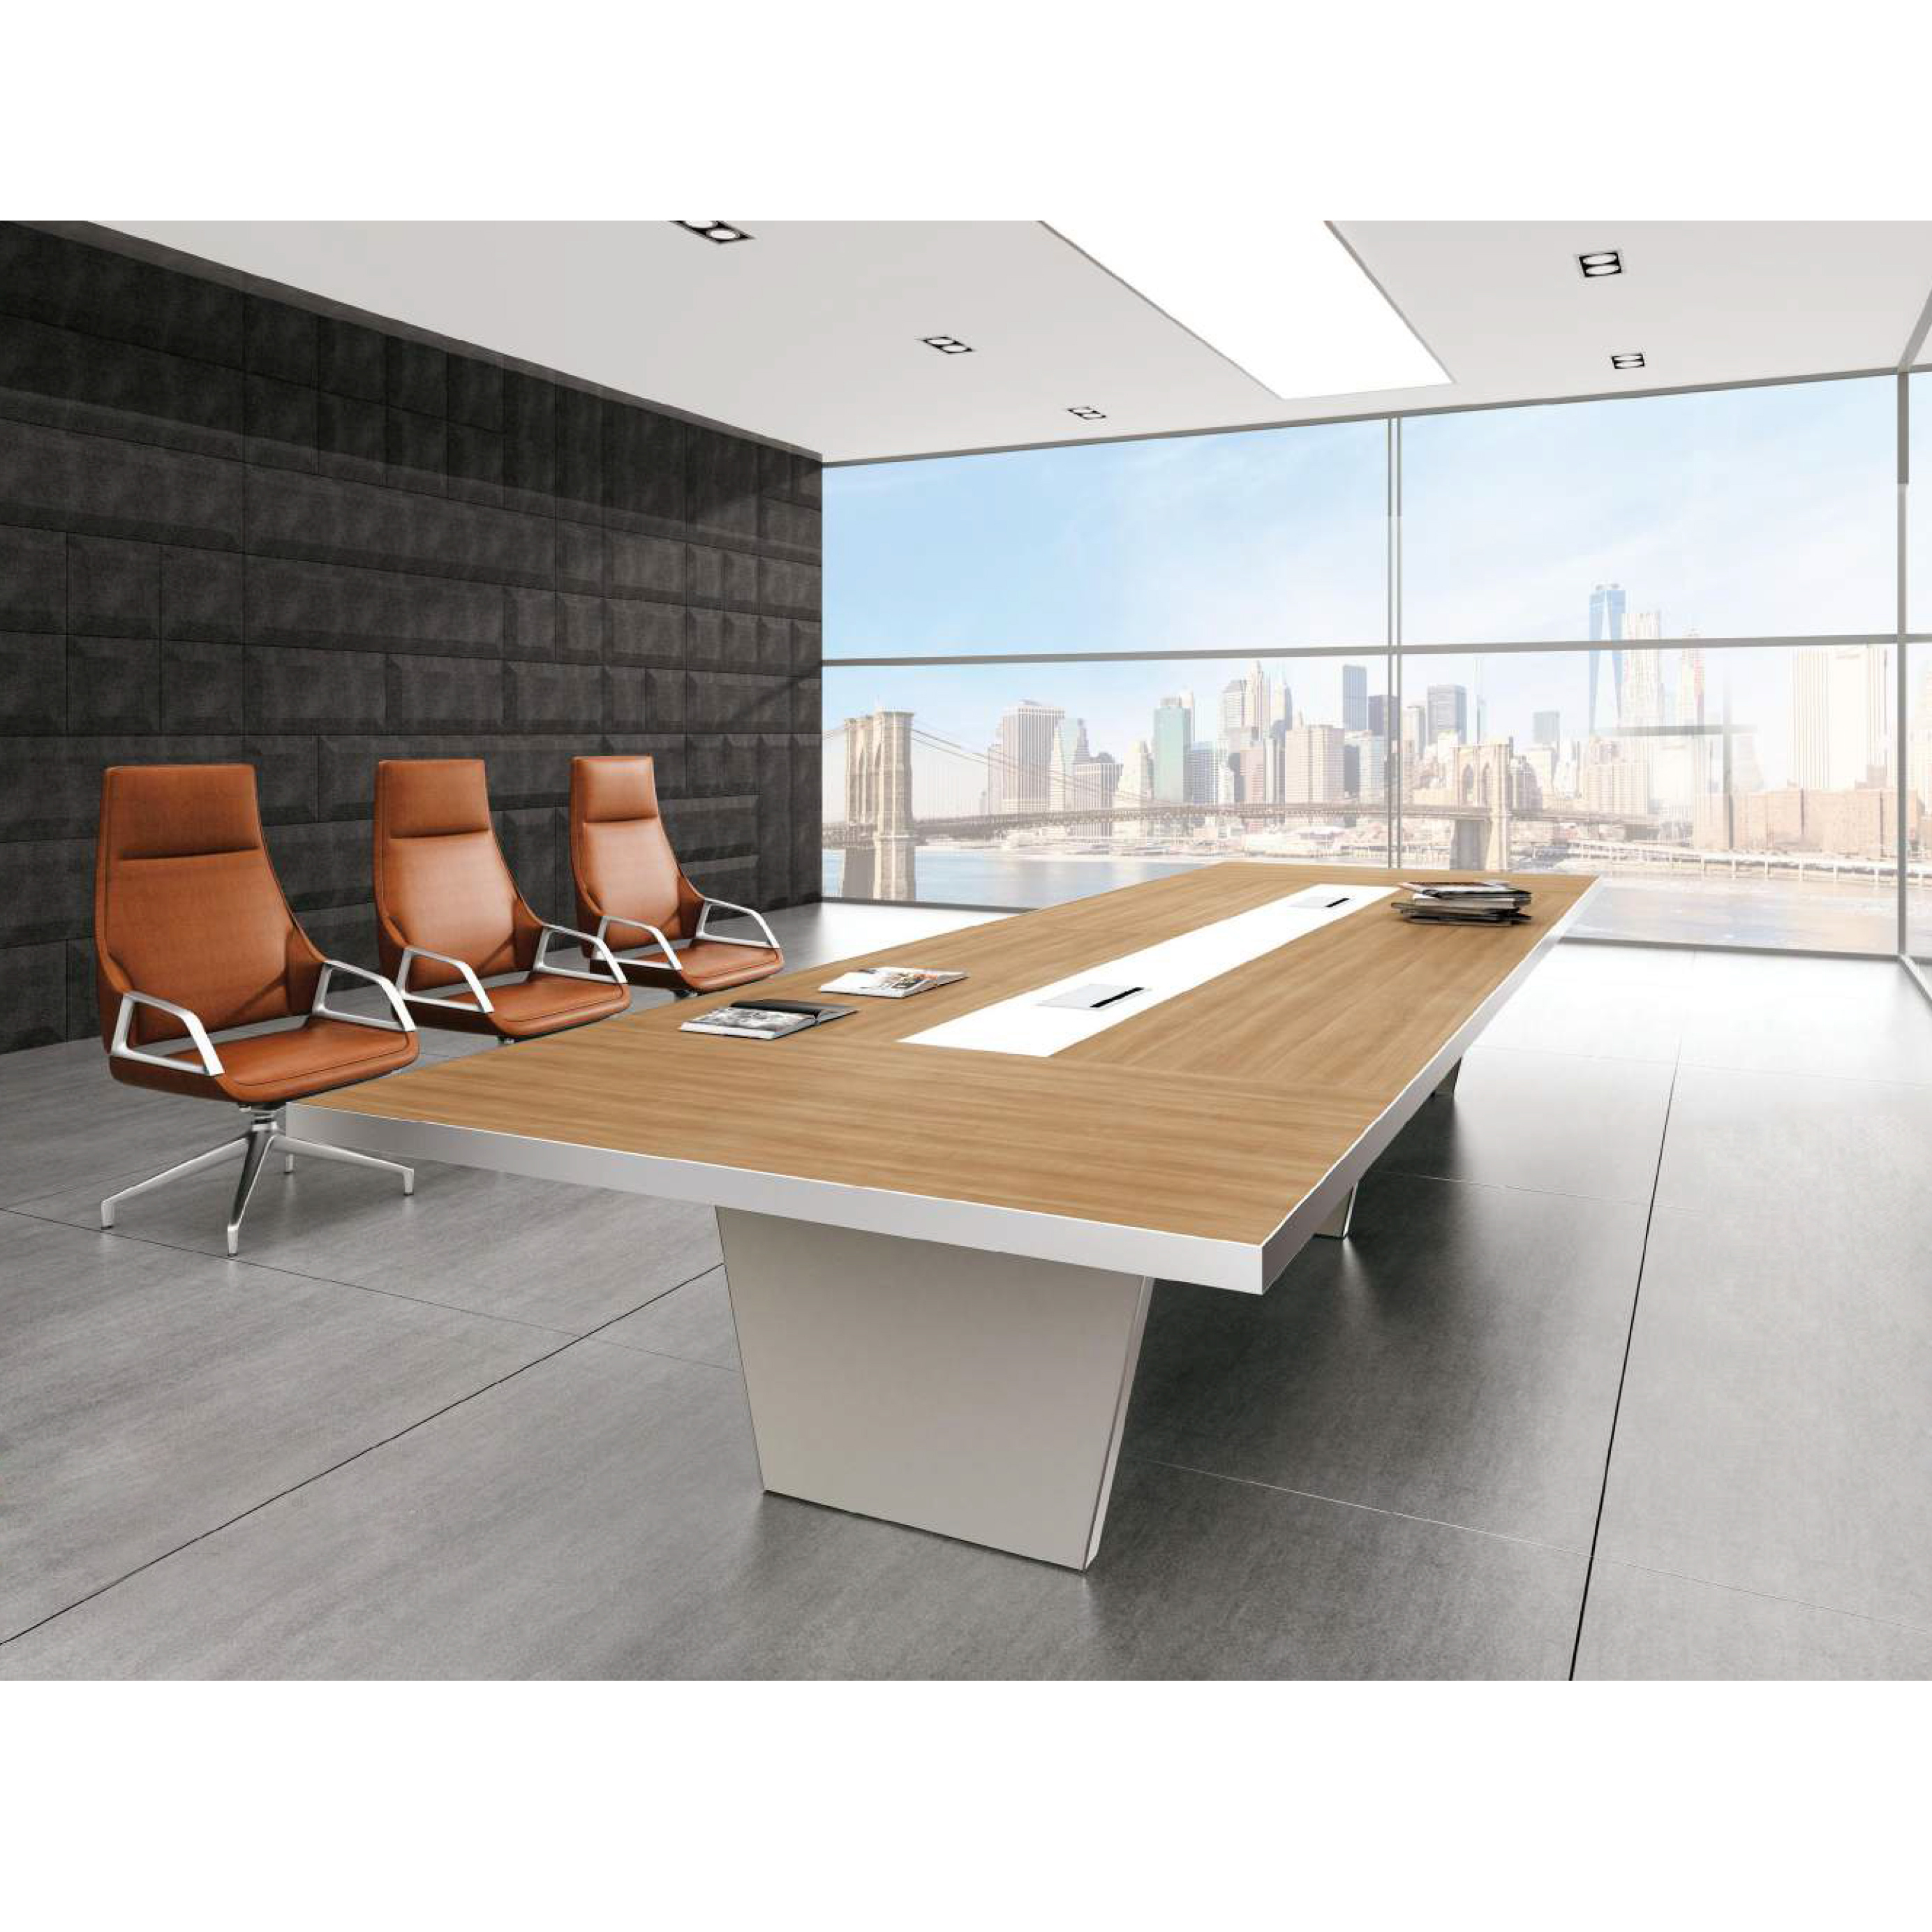 China Factory 42 Person Seater Modern Office Conference Table